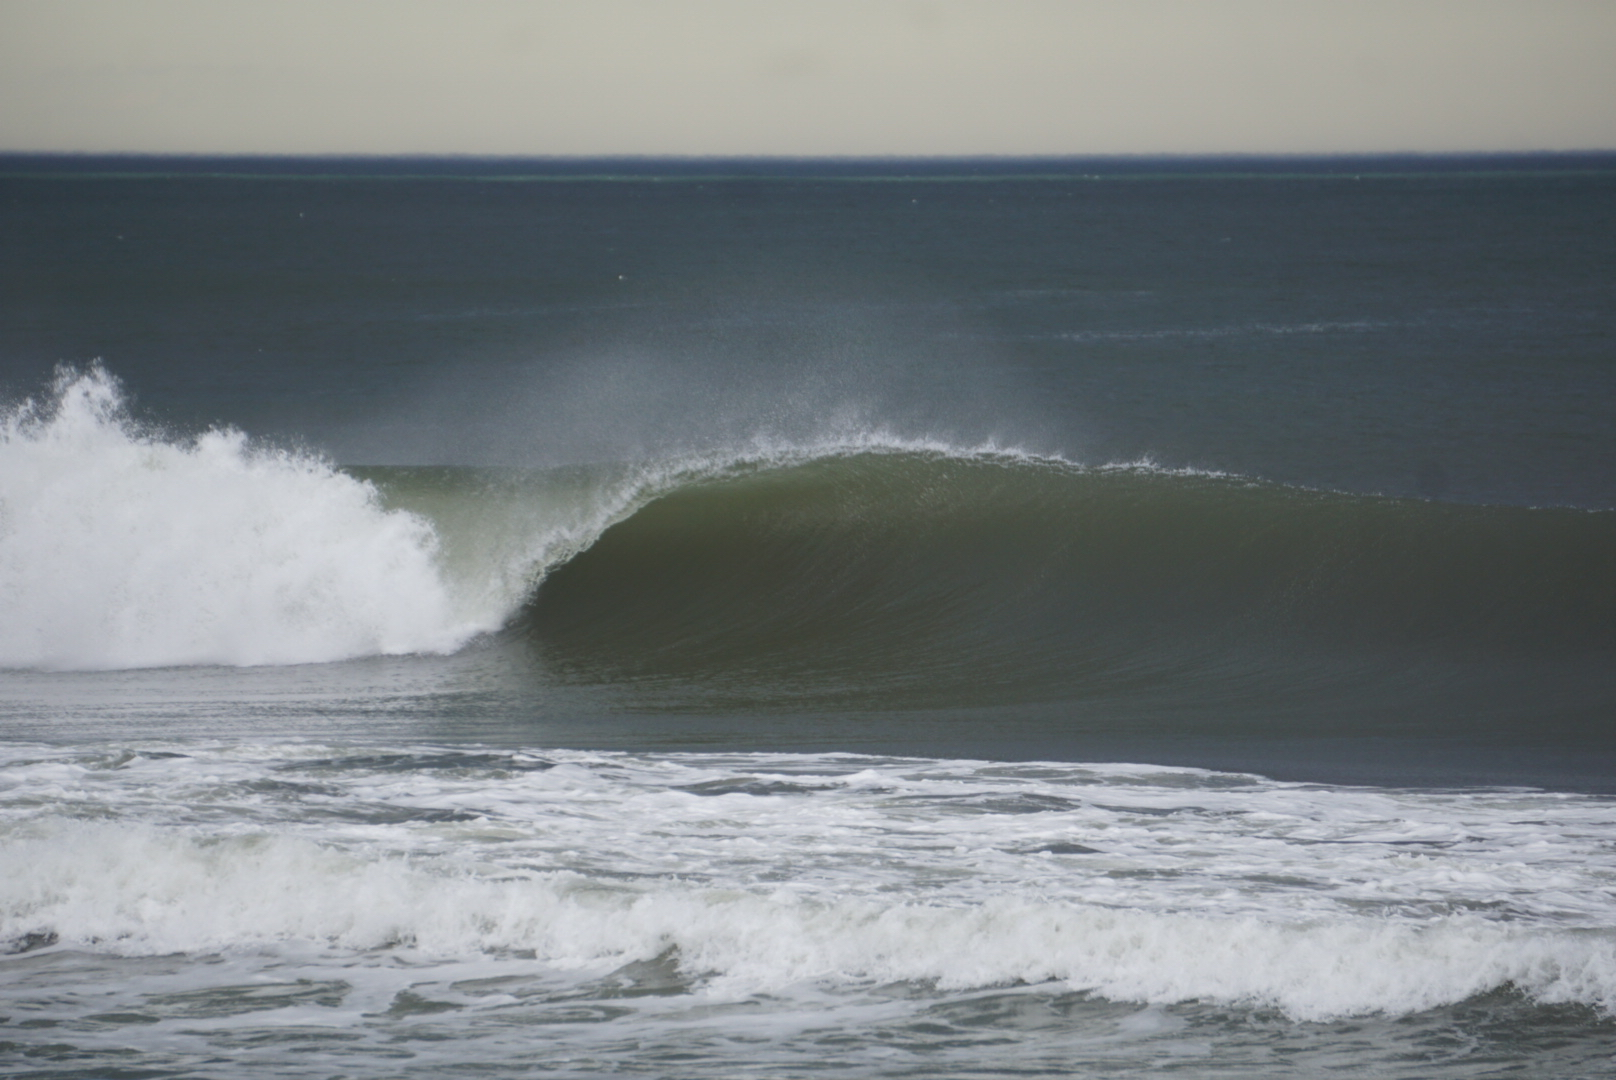 More lefts than usual in NJ. Photo: Dion Mattison